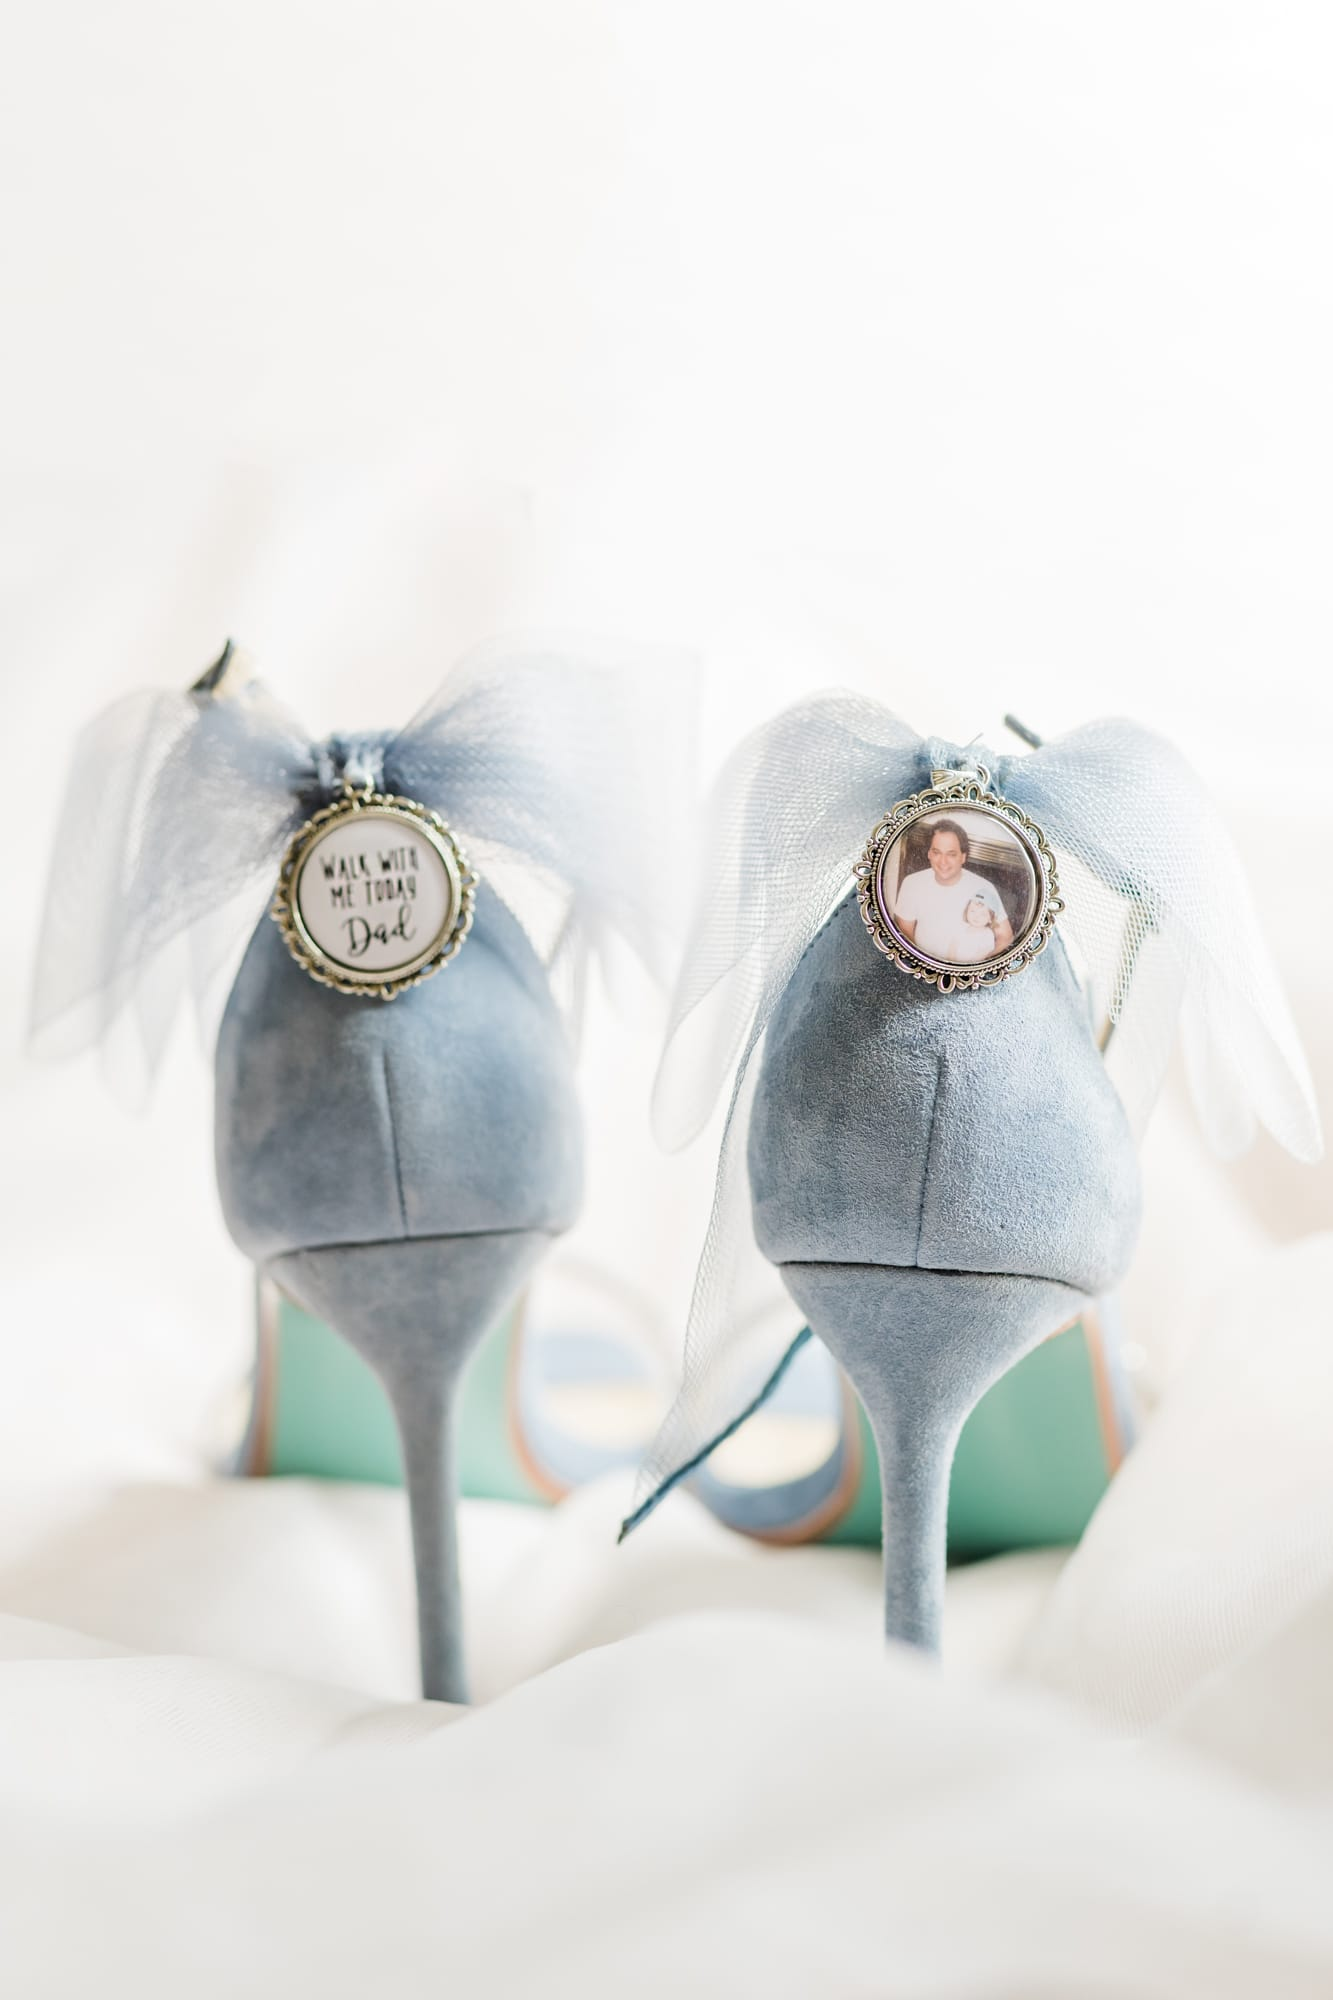 Central Pennsylvania PA summer wedding shoes with charms to honor late father